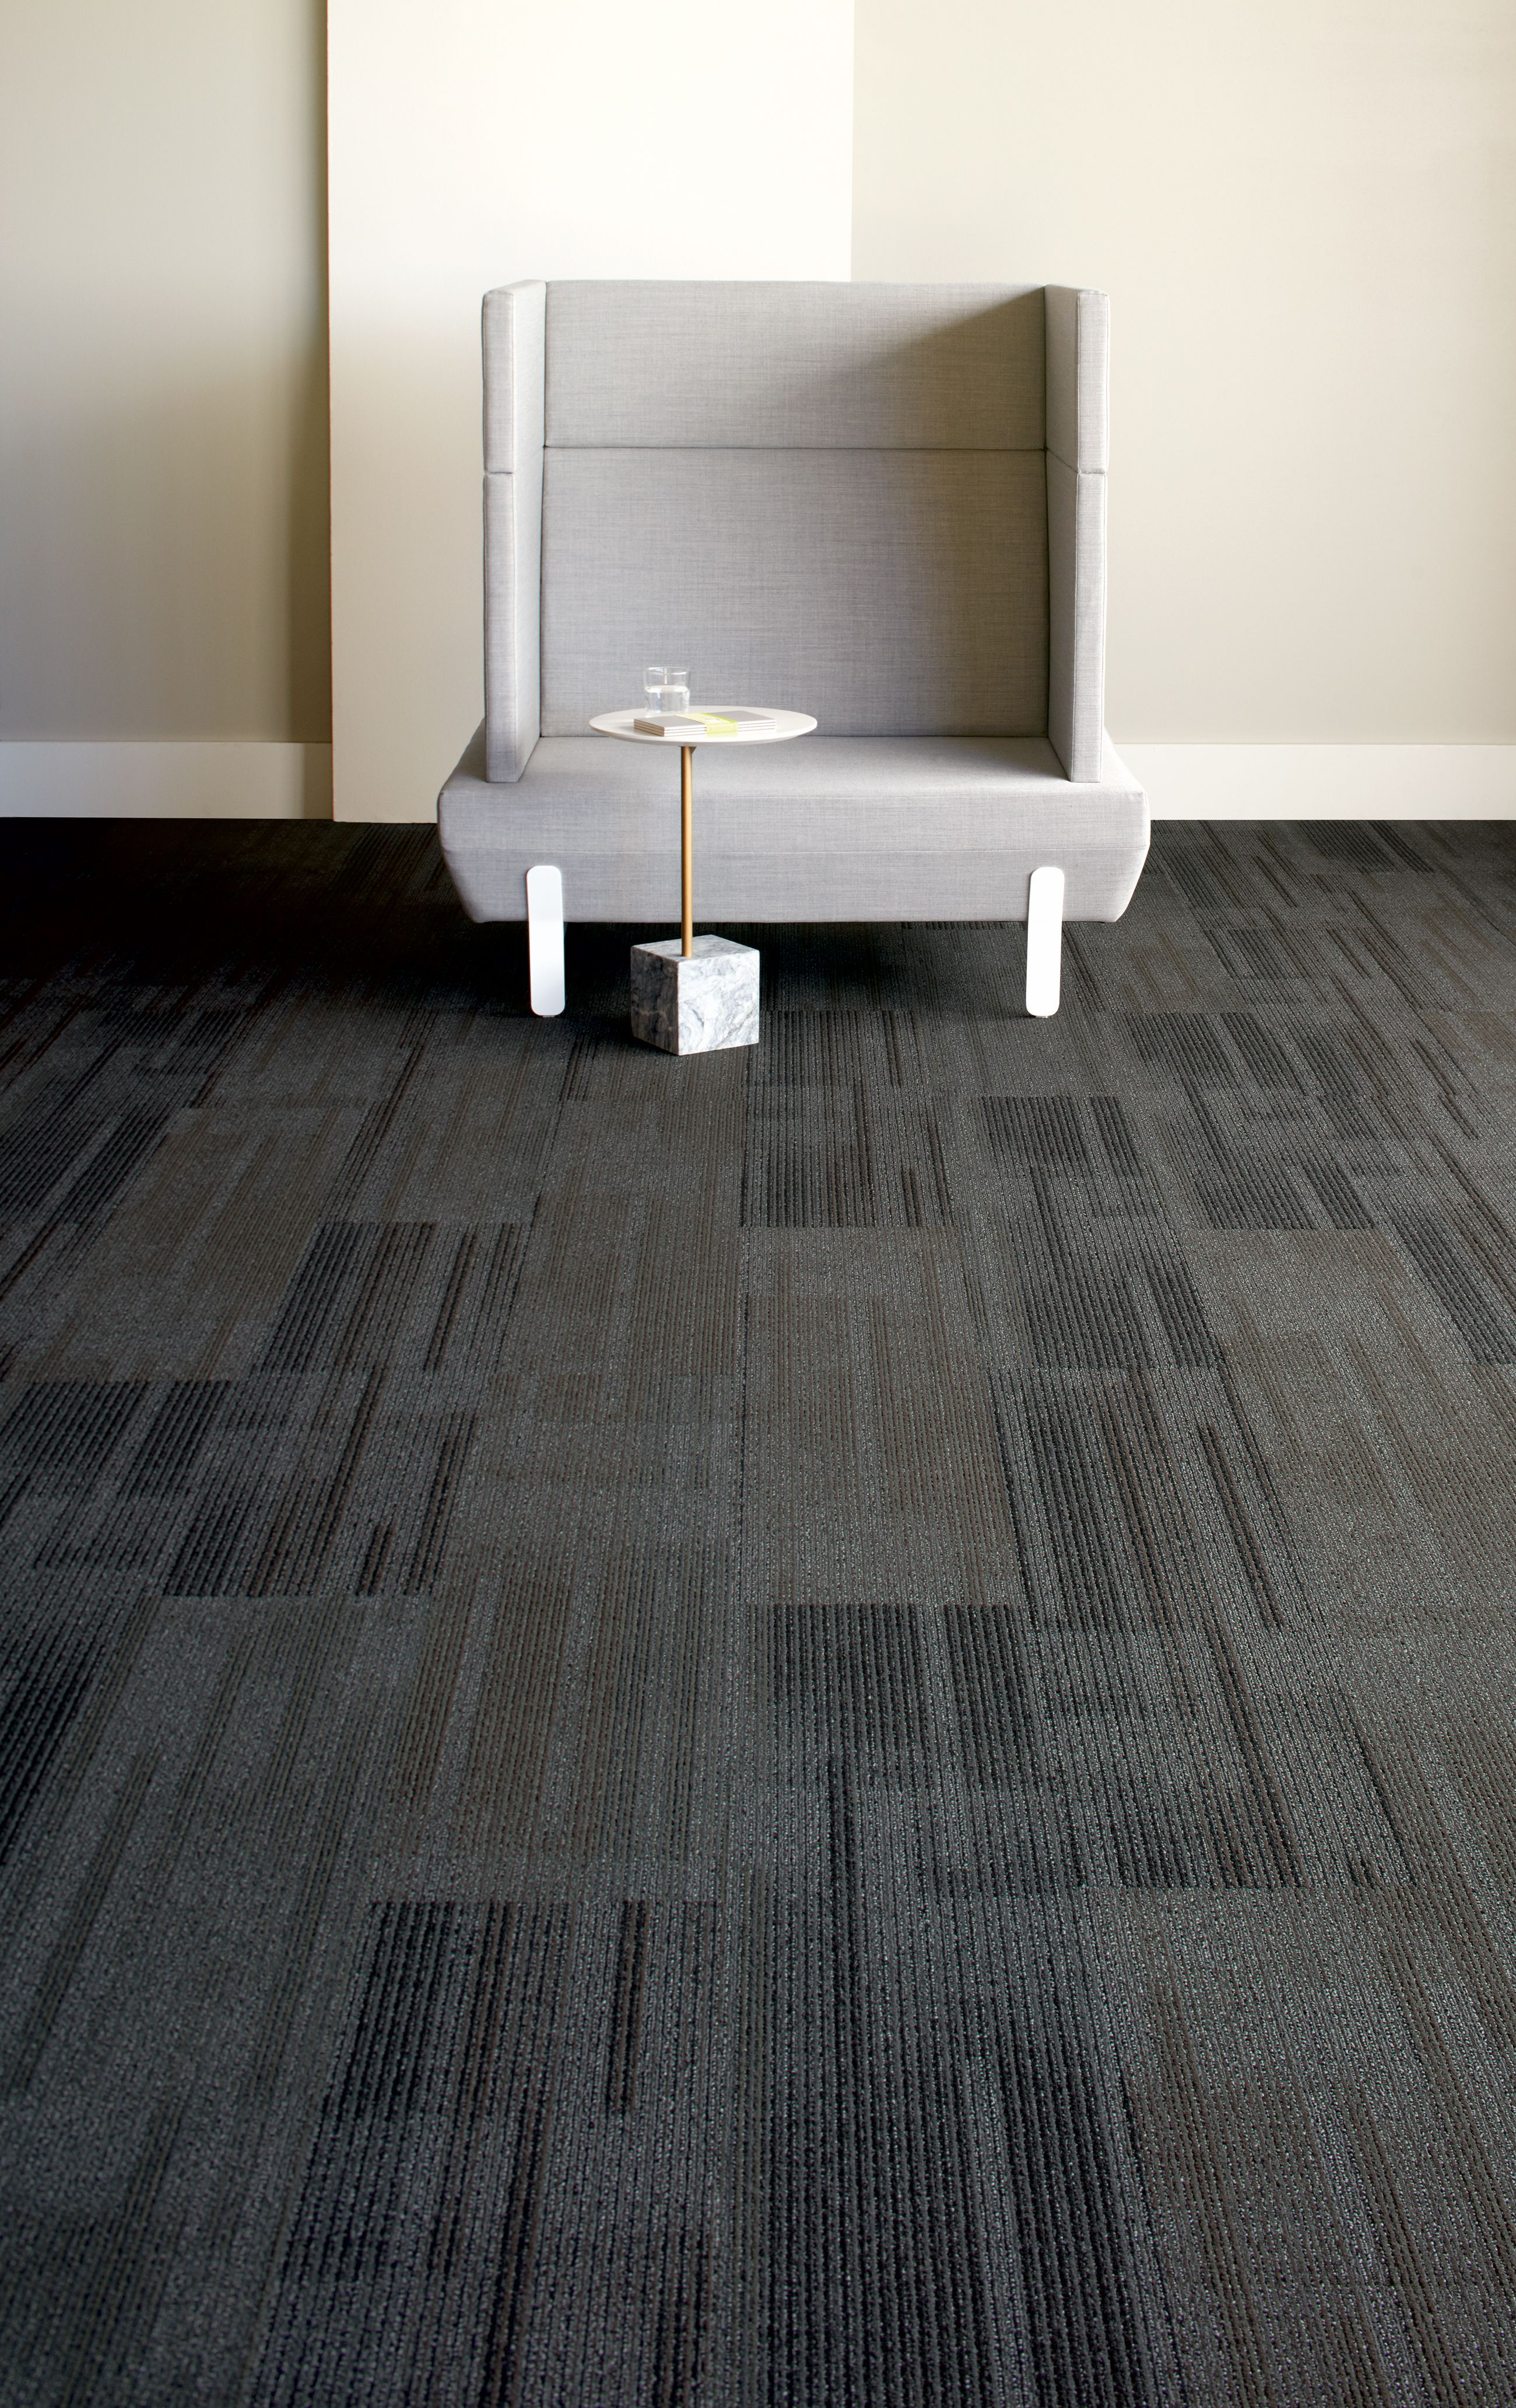 Vault A 12 X 48 Carpet Tile From Patcraft Floor Design Carpet Tiles Carpet Squares